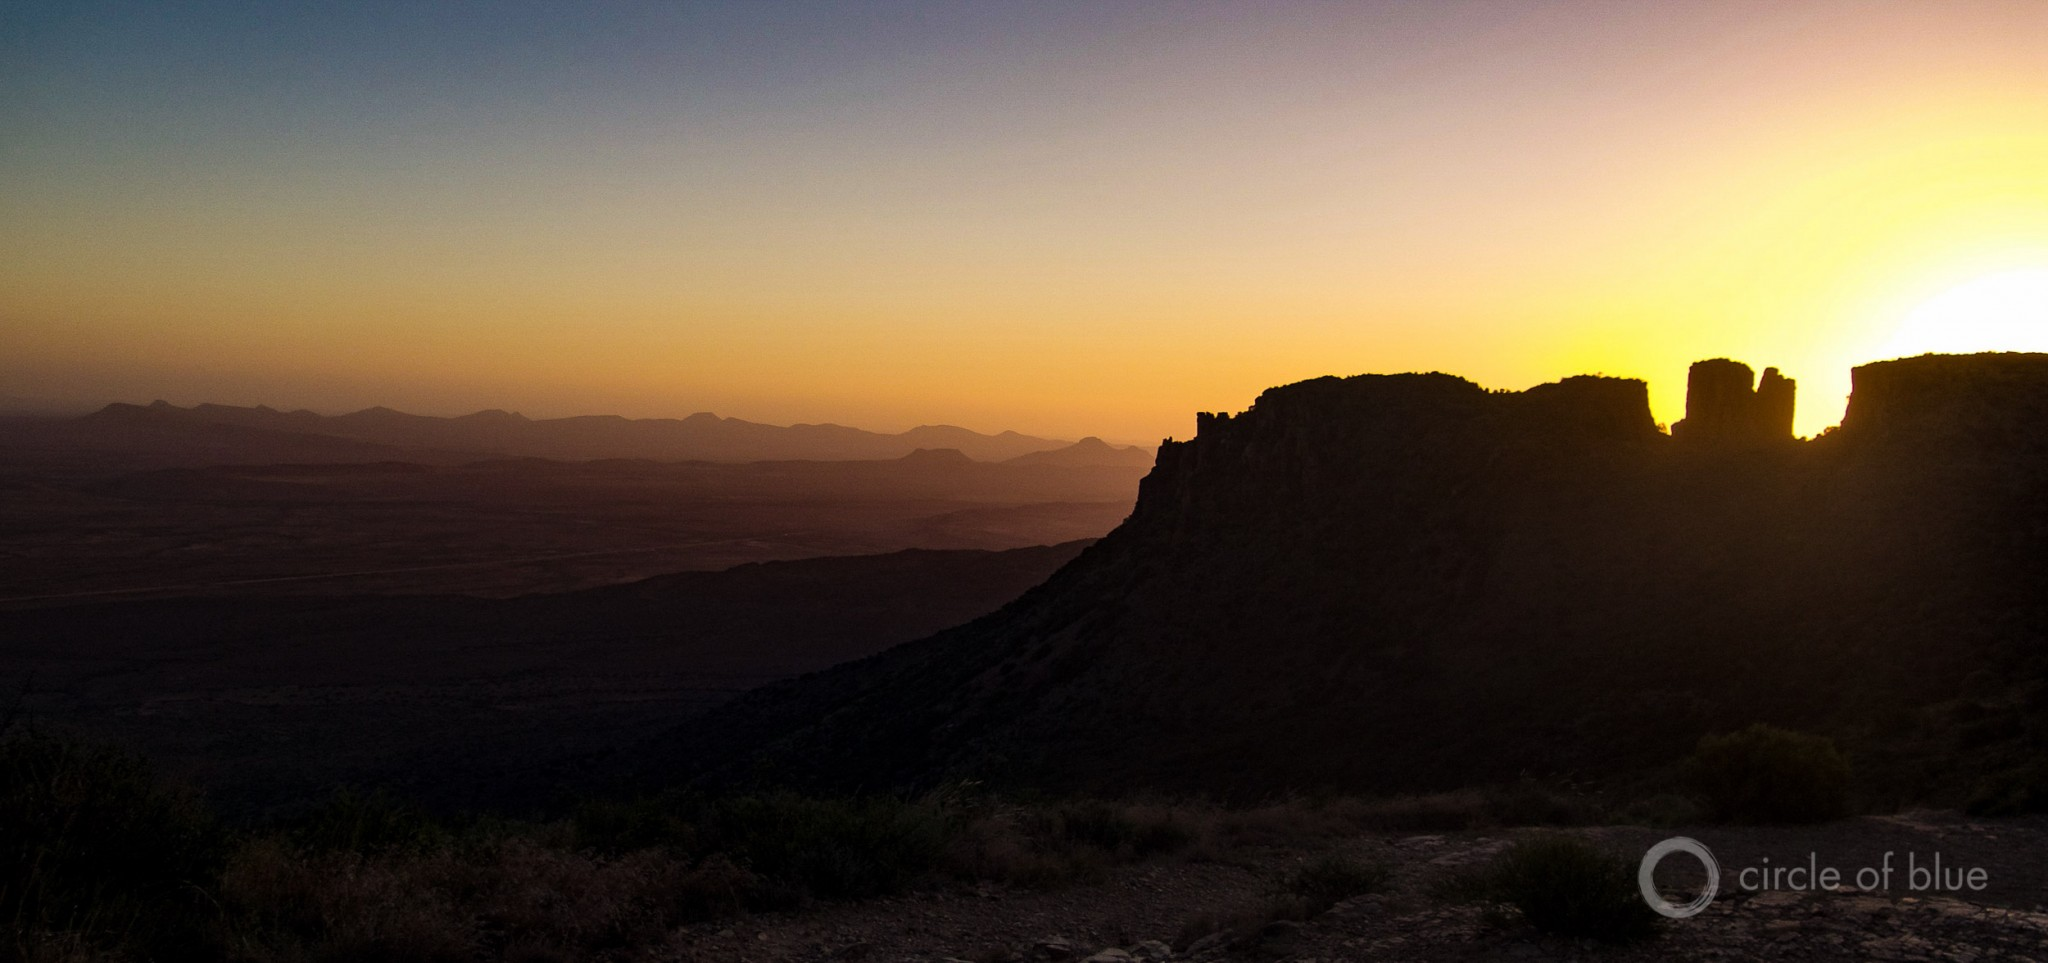 It is fitting that the Karoo, a spectacle of light and land so central to South Africa's geography and history, is now the stage for another of the momentous choices about energy confronting the nation at the bottom of the continent. Photo © Keith Schneider / Circle of Blue